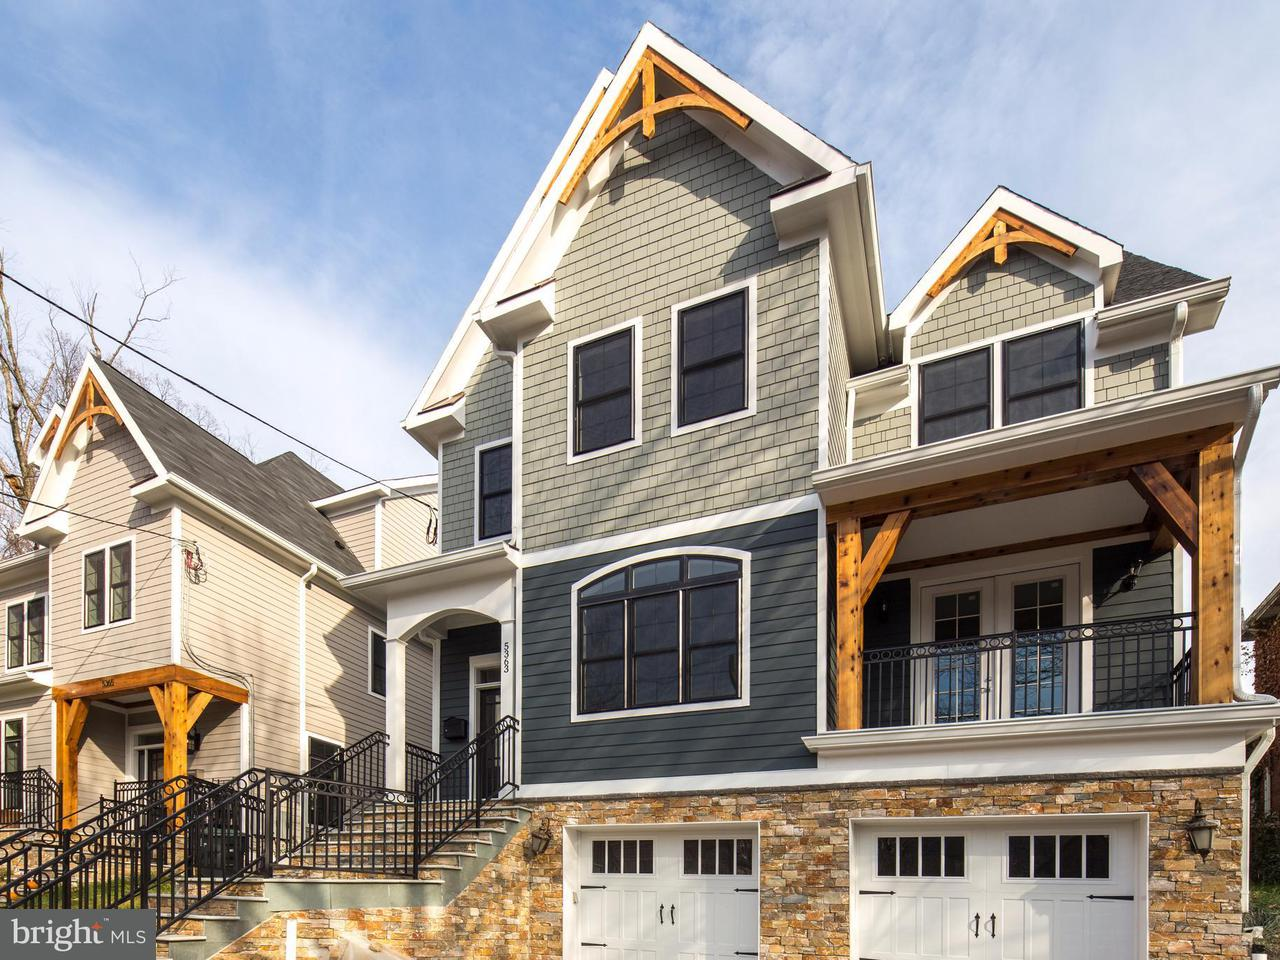 Single Family Home for Sale at 5363 29TH ST NW 5363 29TH ST NW Washington, District Of Columbia 20015 United States